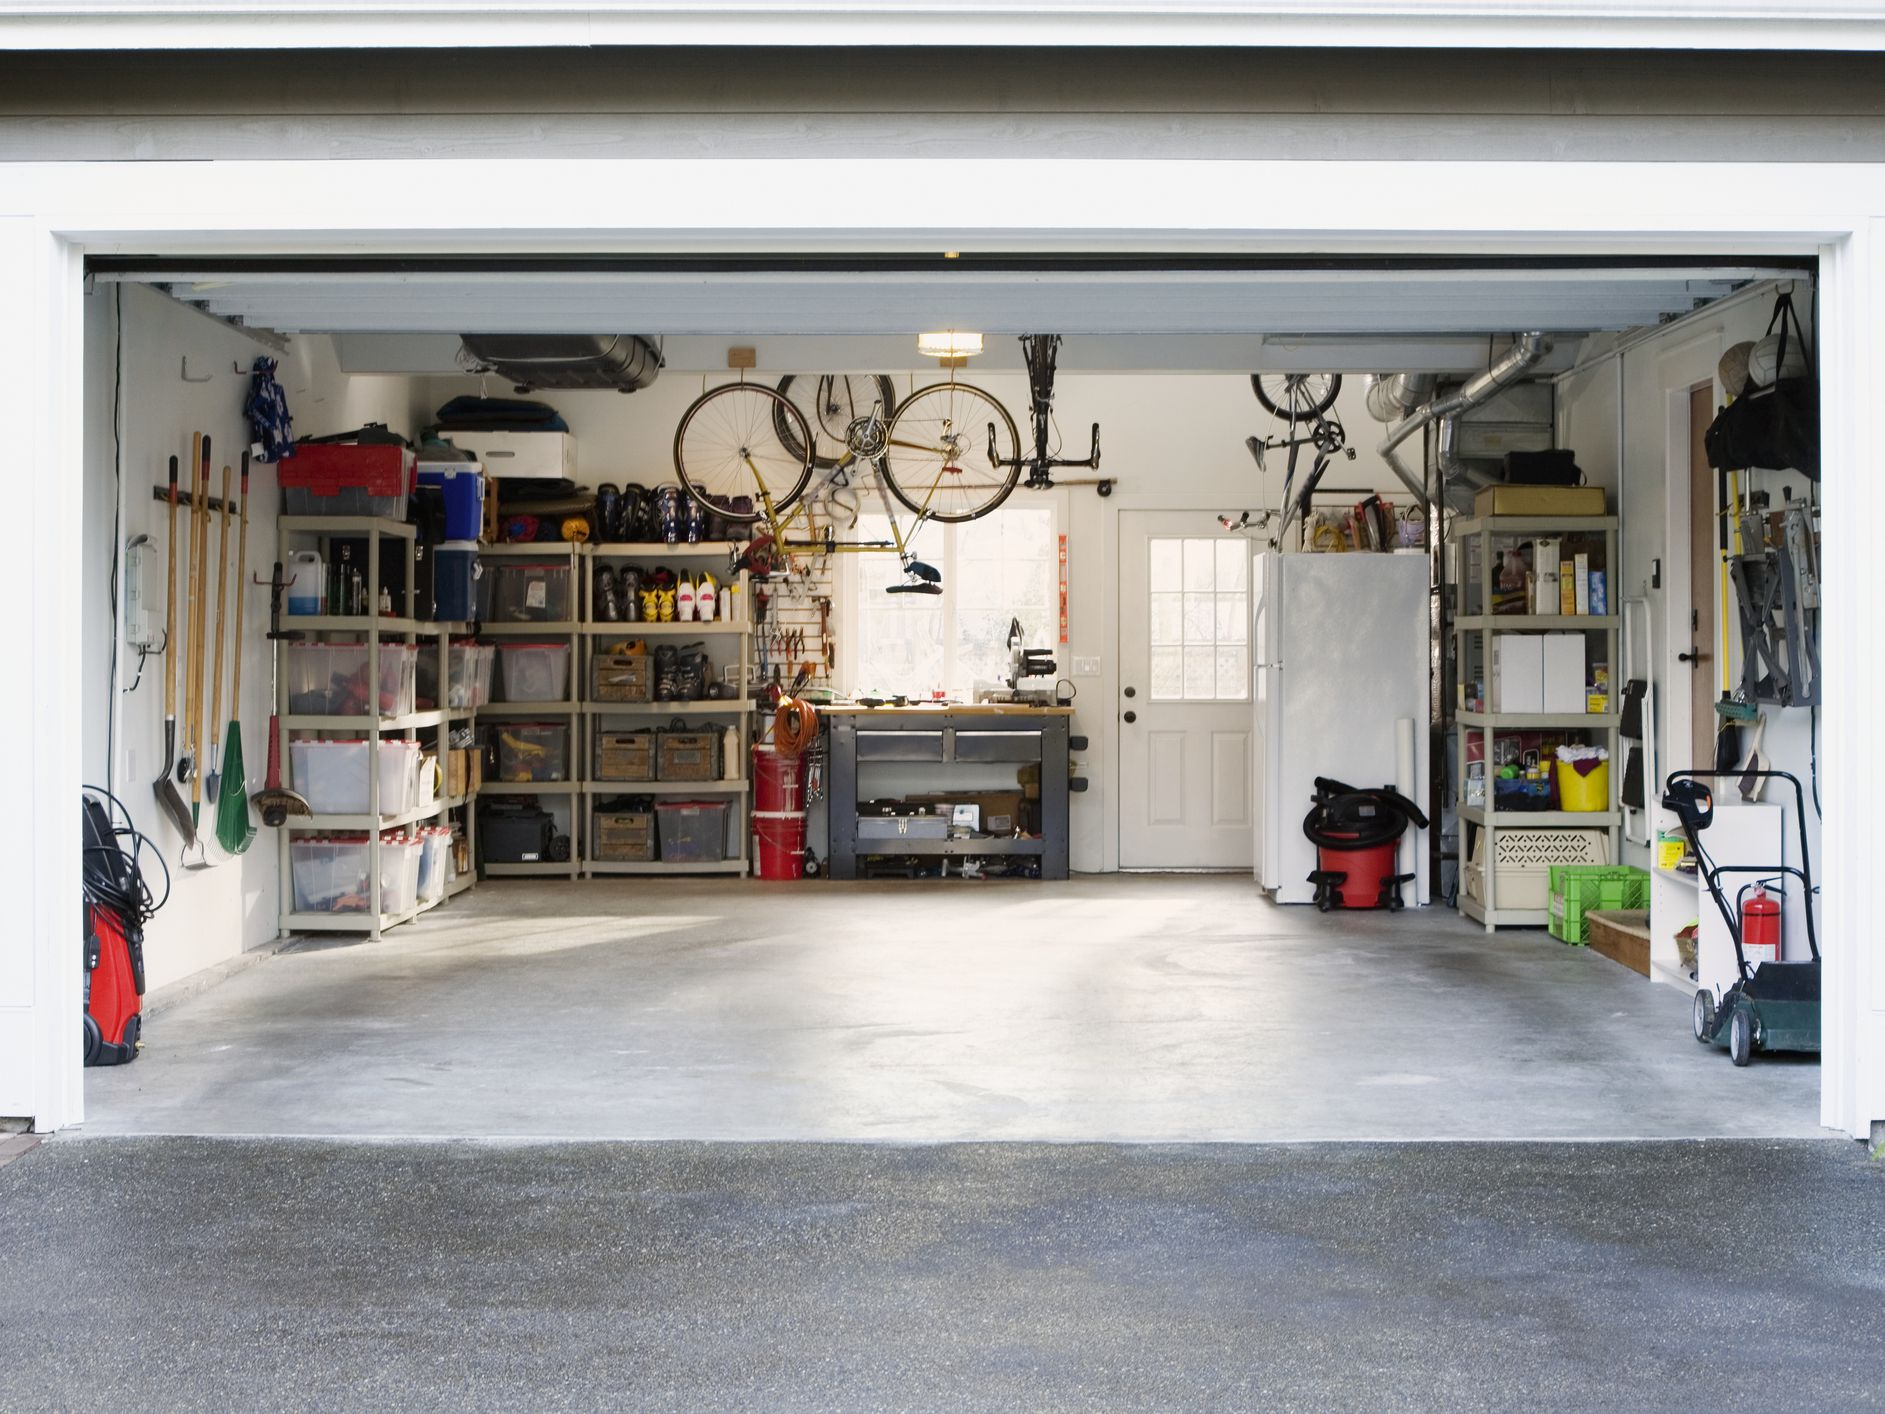 8 Potential Problems You Should Watch Out for When Viewing a Home's Garage